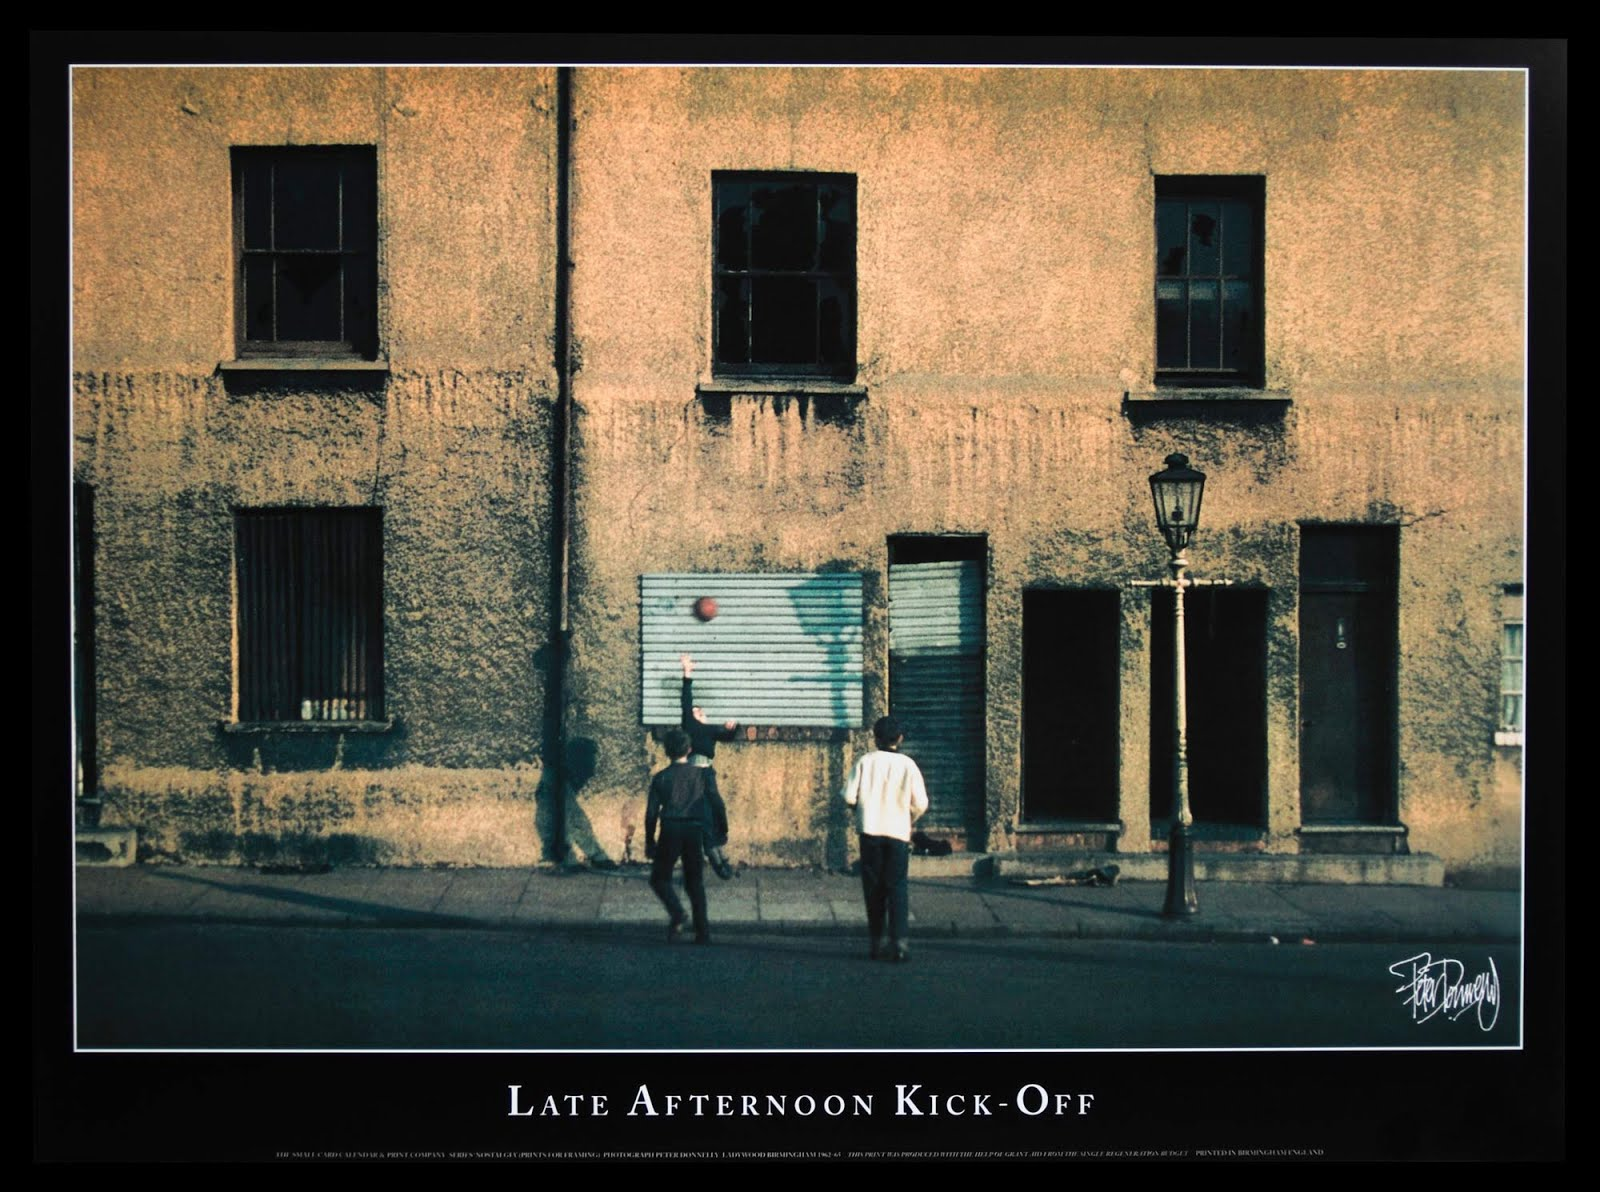 Late Afternoon Kick Off Poster  332mm x 447mm Lithographic Print